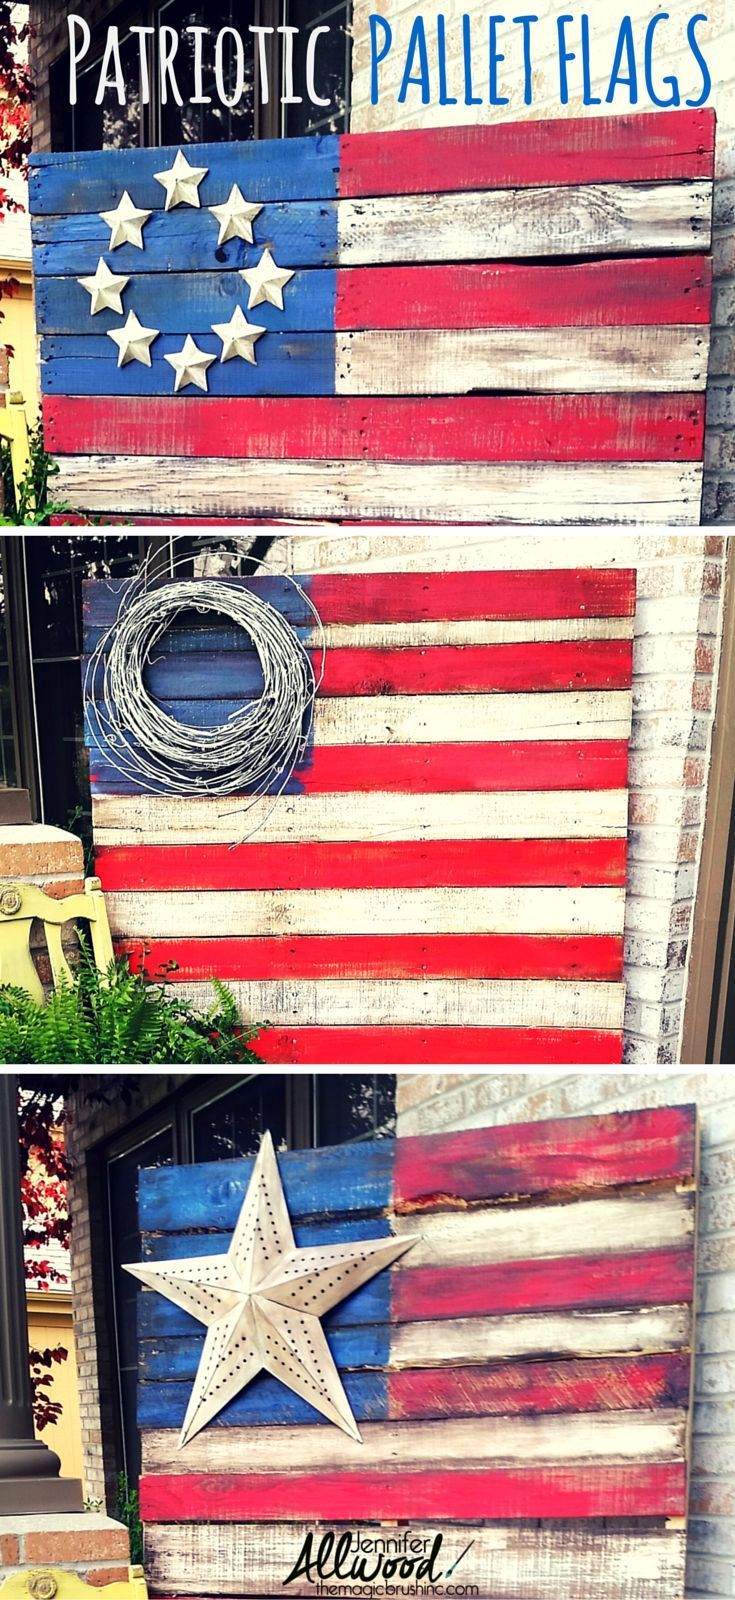 Celebrate Independence Day / Fourth of July with some decorative Patriotic Pallet Flags. Free videos by http://theMagicBrushinc.com on how to do it step-by-step, prepping, painting and staining!